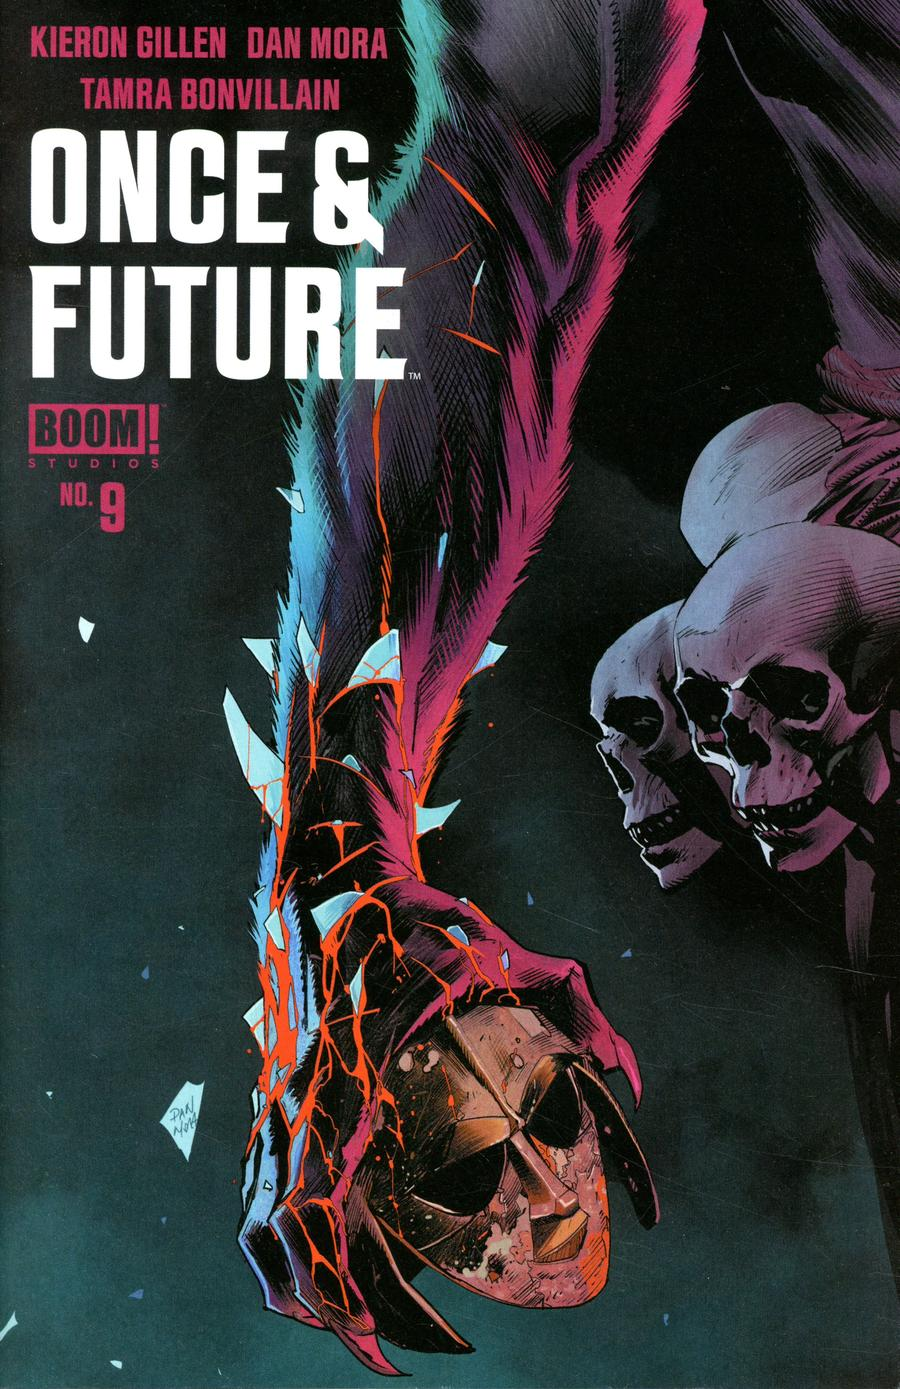 Once & Future #9 (2020)